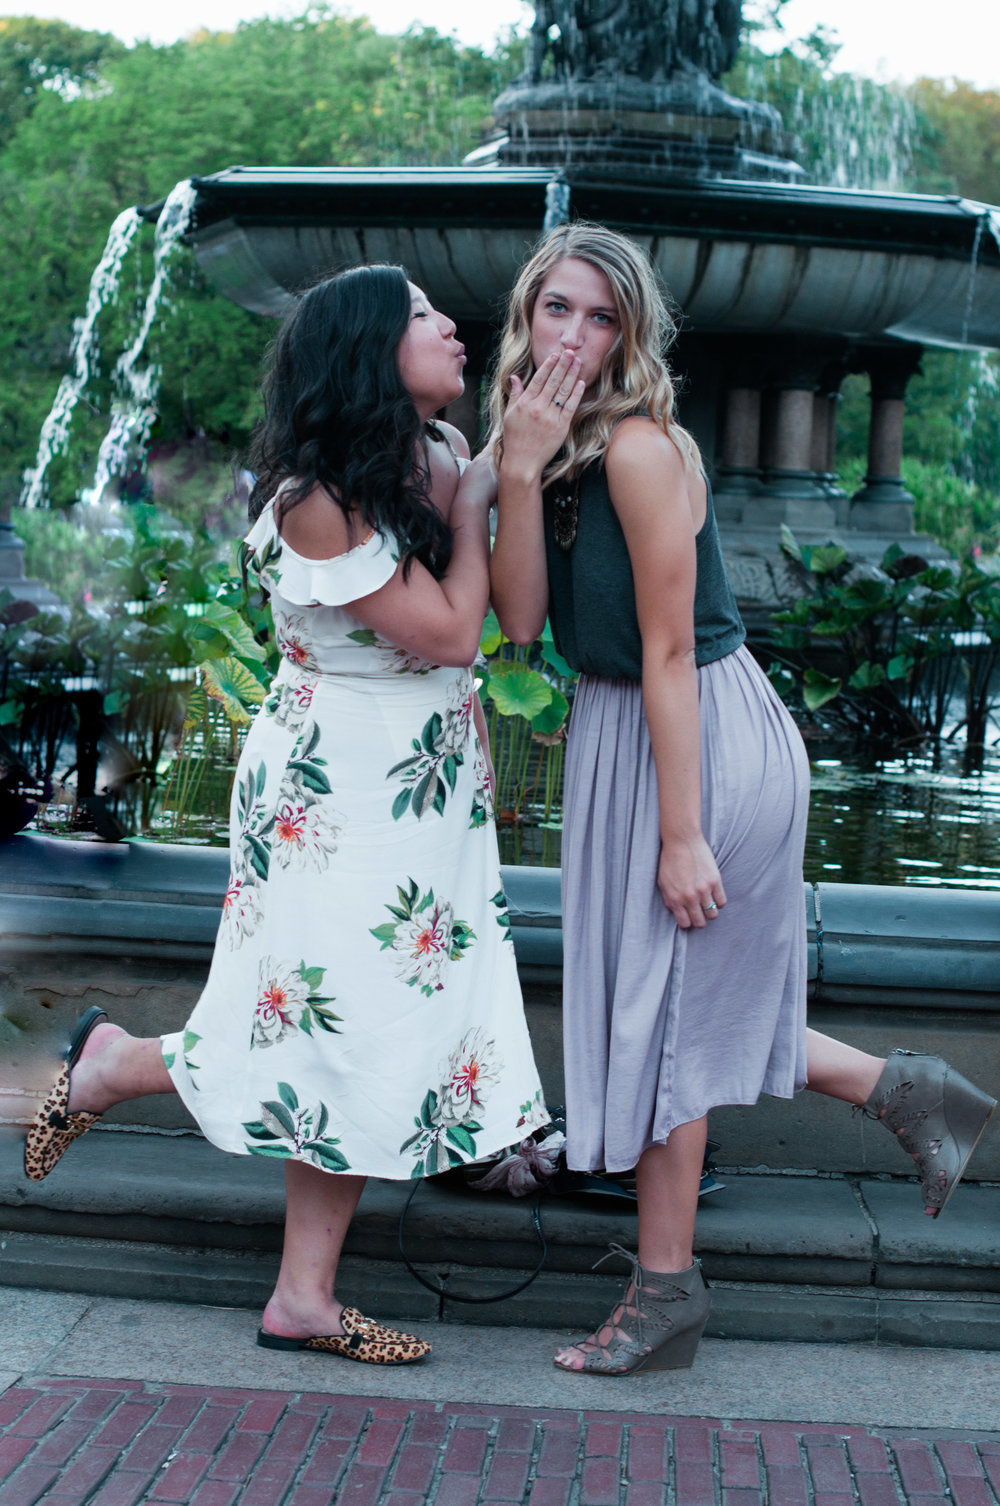 best friends.nyc.lifestyle.gossipgirl.nycphotographer